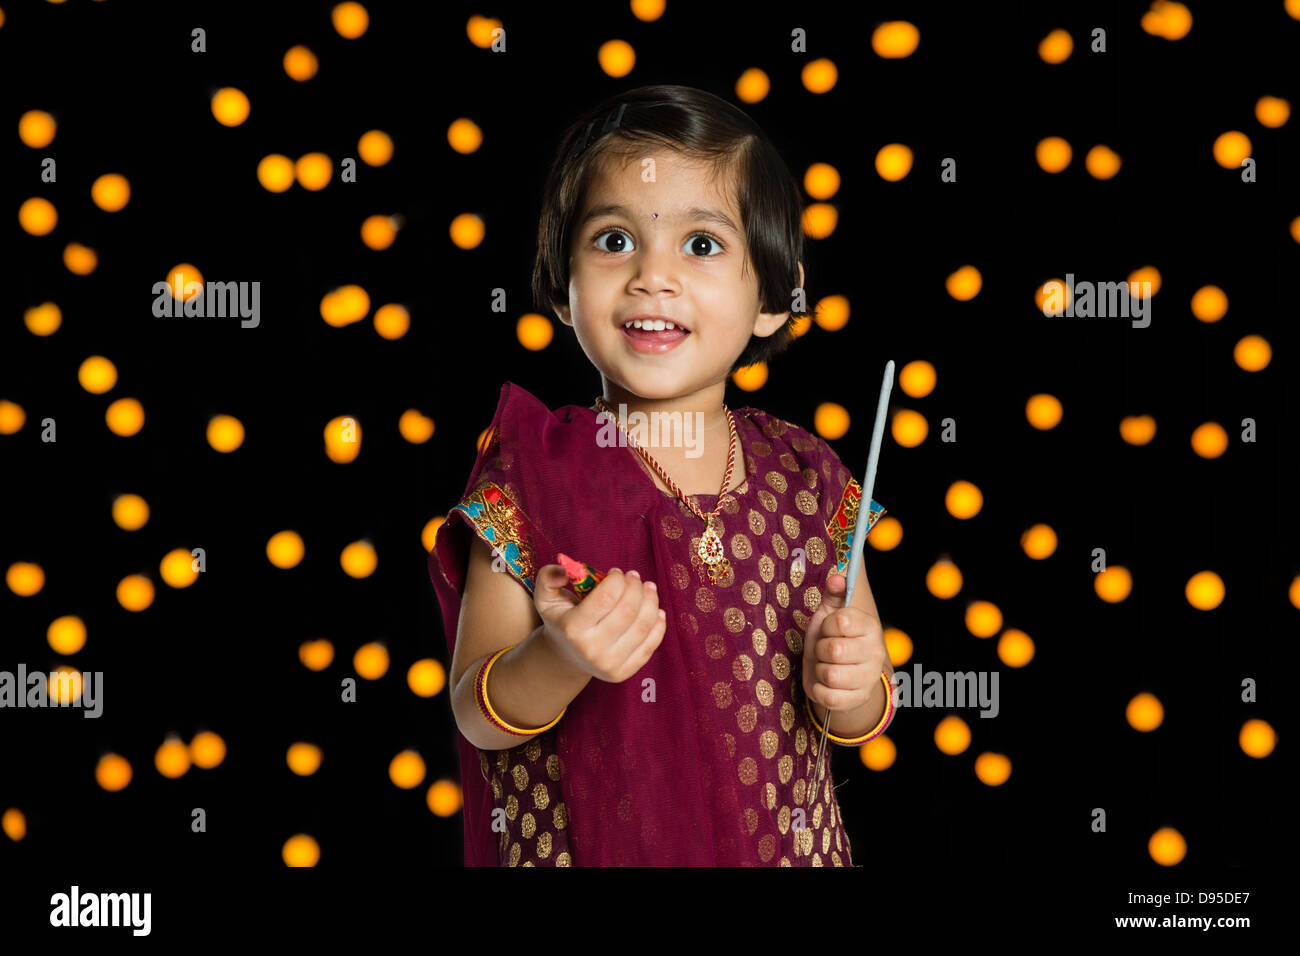 Girl holding fire crackers and smiling in front of Diwali decoration Stock Photo